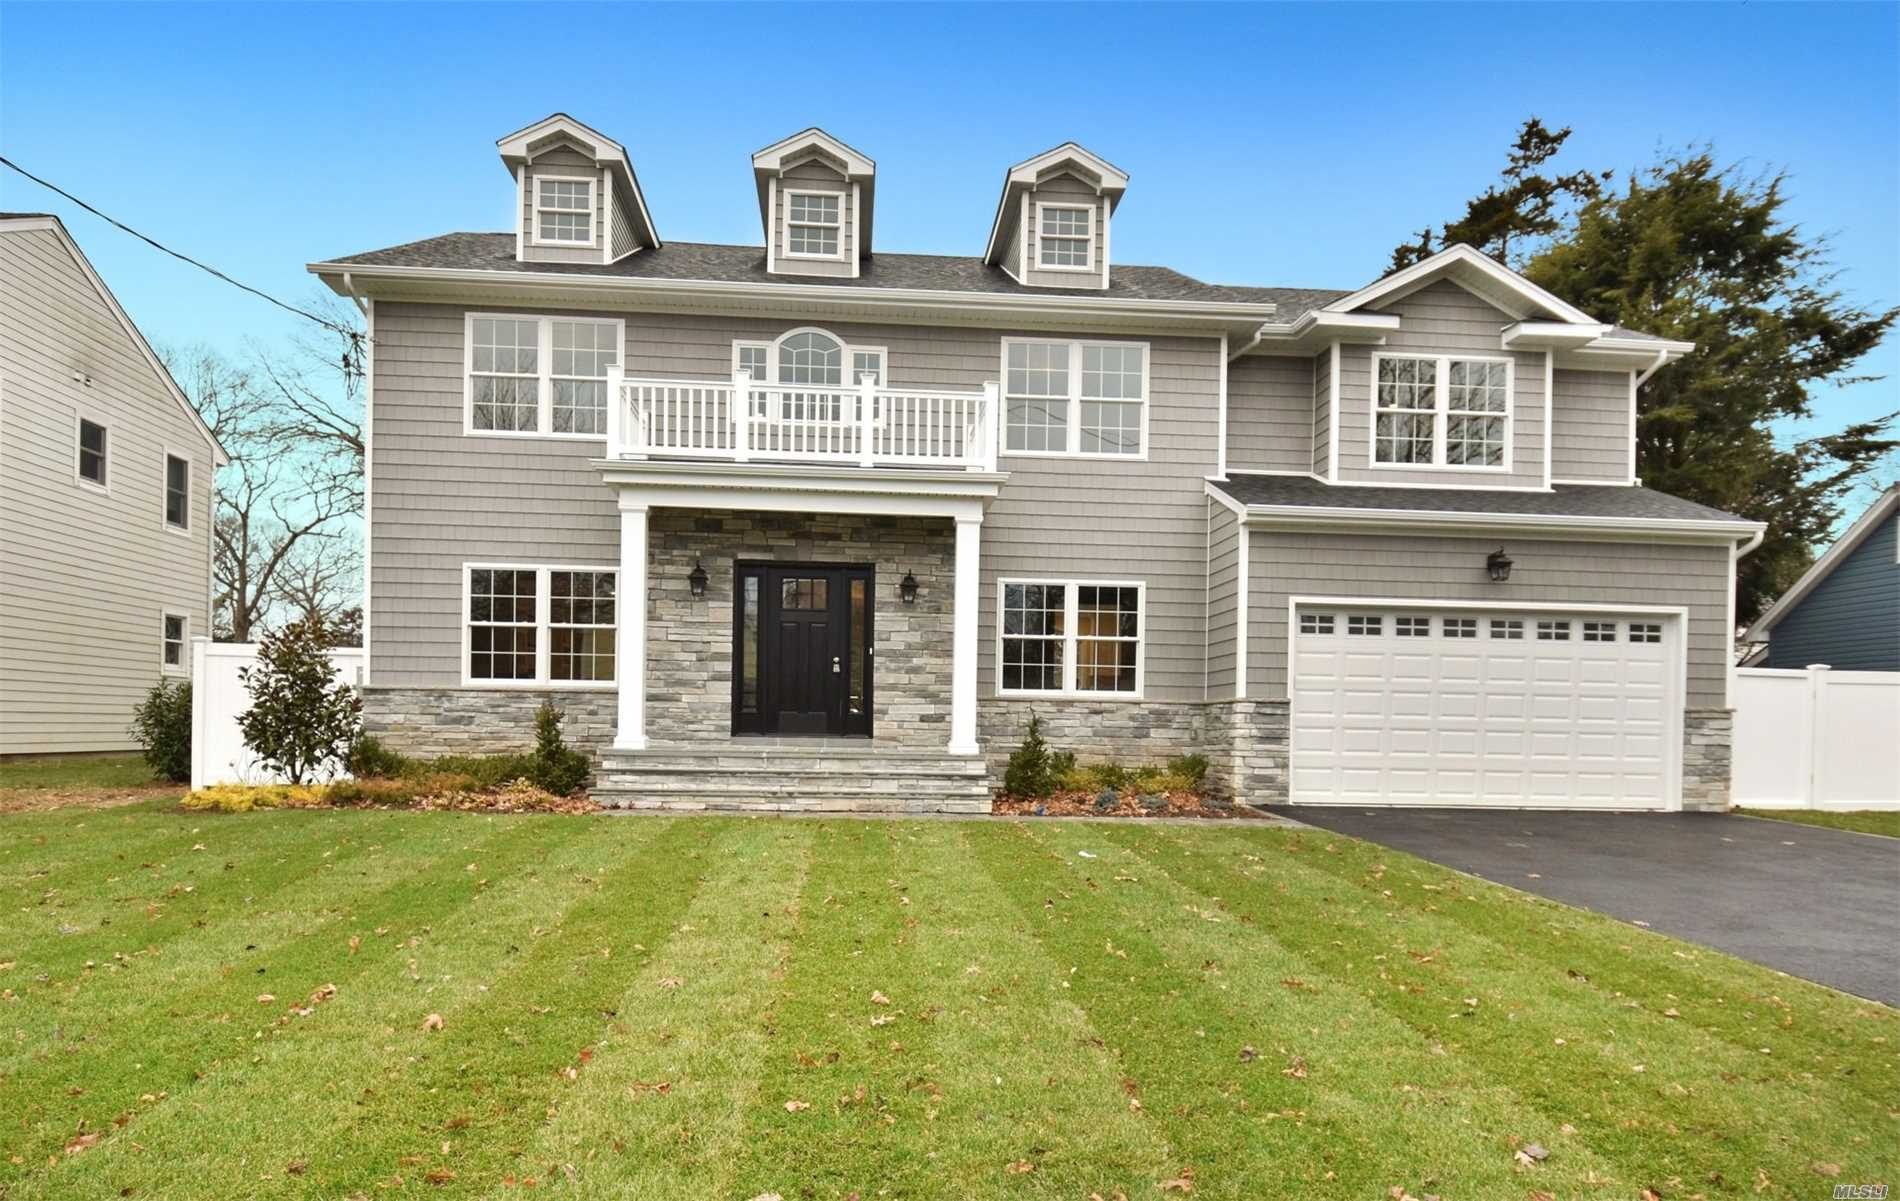 Now Is Your Chance To Own Your Dream Home! Being Built -2018! 6 Bedroom, 5 Bath, Center Hall Colonial, North Syosset Time To Customize! High End Amenities, Hw Floors, Gorgeous Gourmet Eik, Elaborate Trim Package, Stones Throw To Town, Rr, Village Elementary. Pre-Construction Bonus = Seller Is Offering A Fully Installed House Generator! Pictures Are For Workmanship Purposes Only..Not Exact To This House.